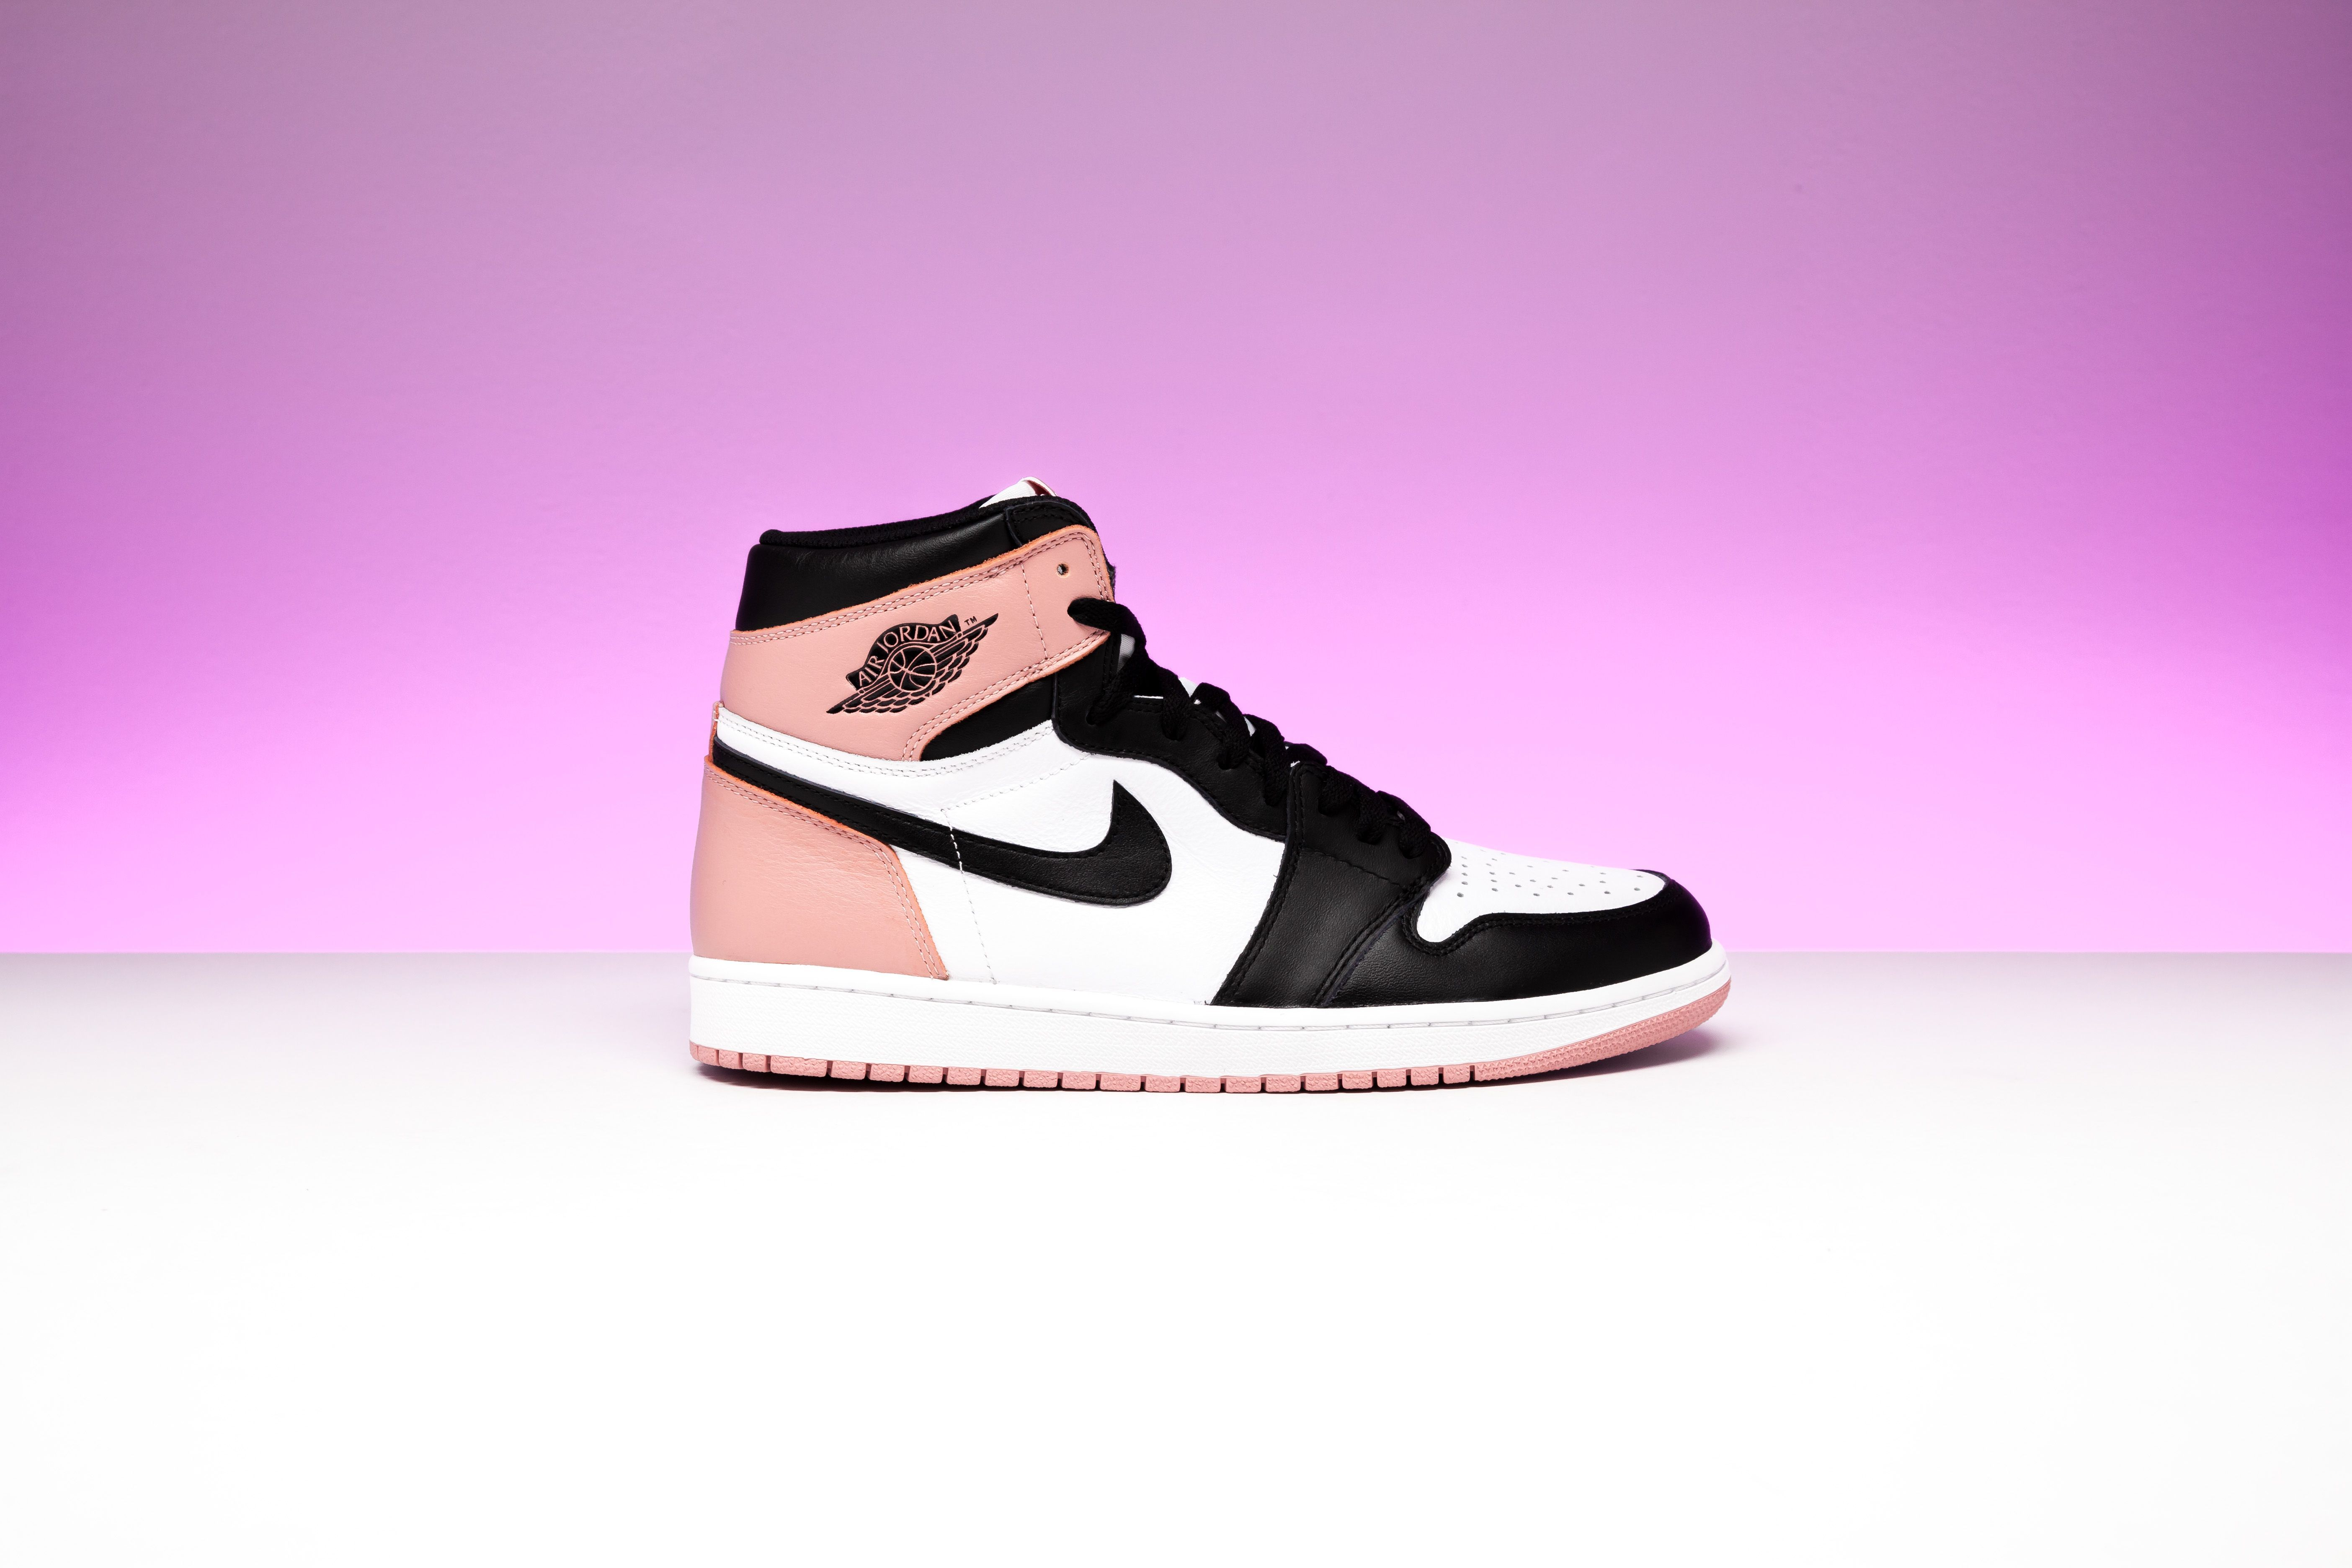 Air Jordan 1 Retro High Og Nrg Rust Pink 861428 101 In 2020